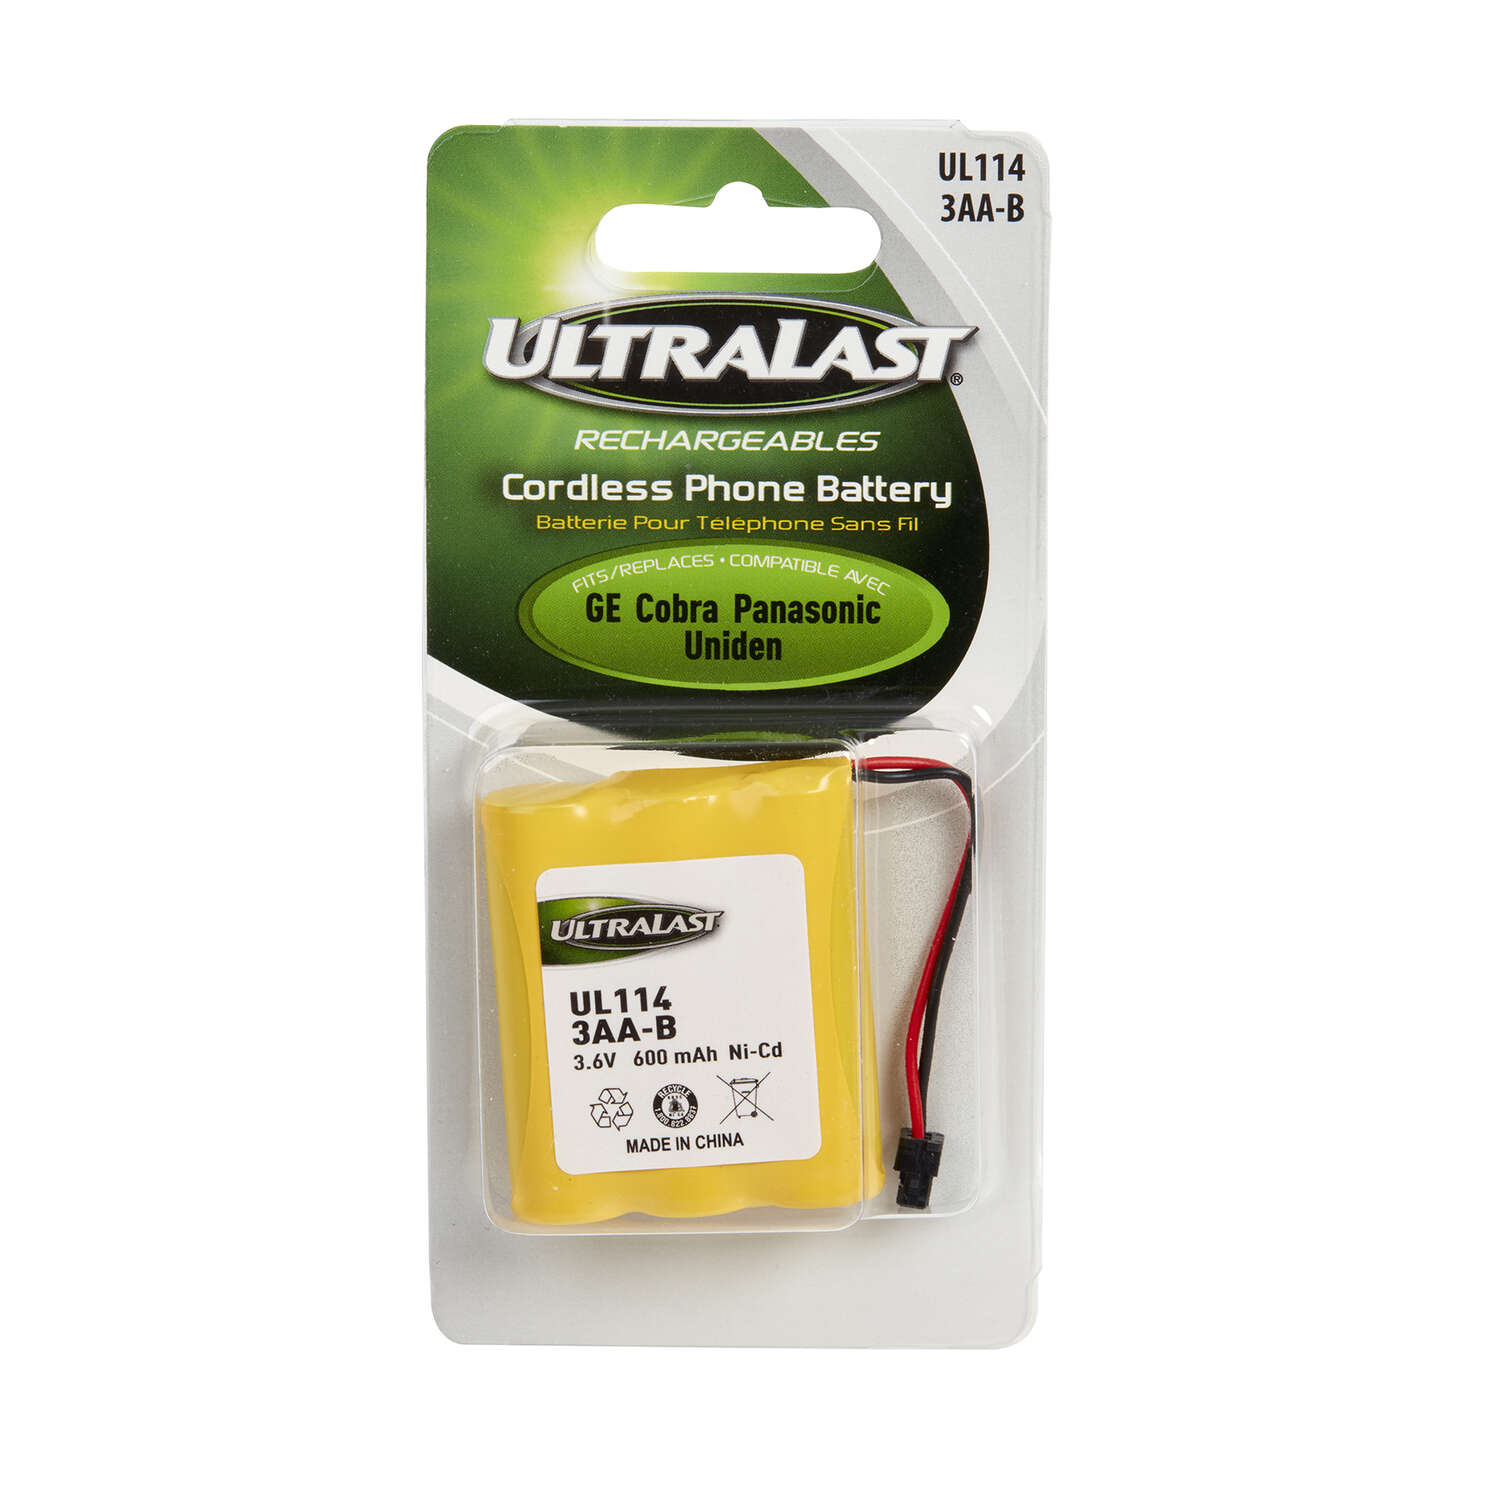 UltraLast  Ni-Cad  AA  3.6 volt Cordless Phone Battery  3AA-B  1 pk